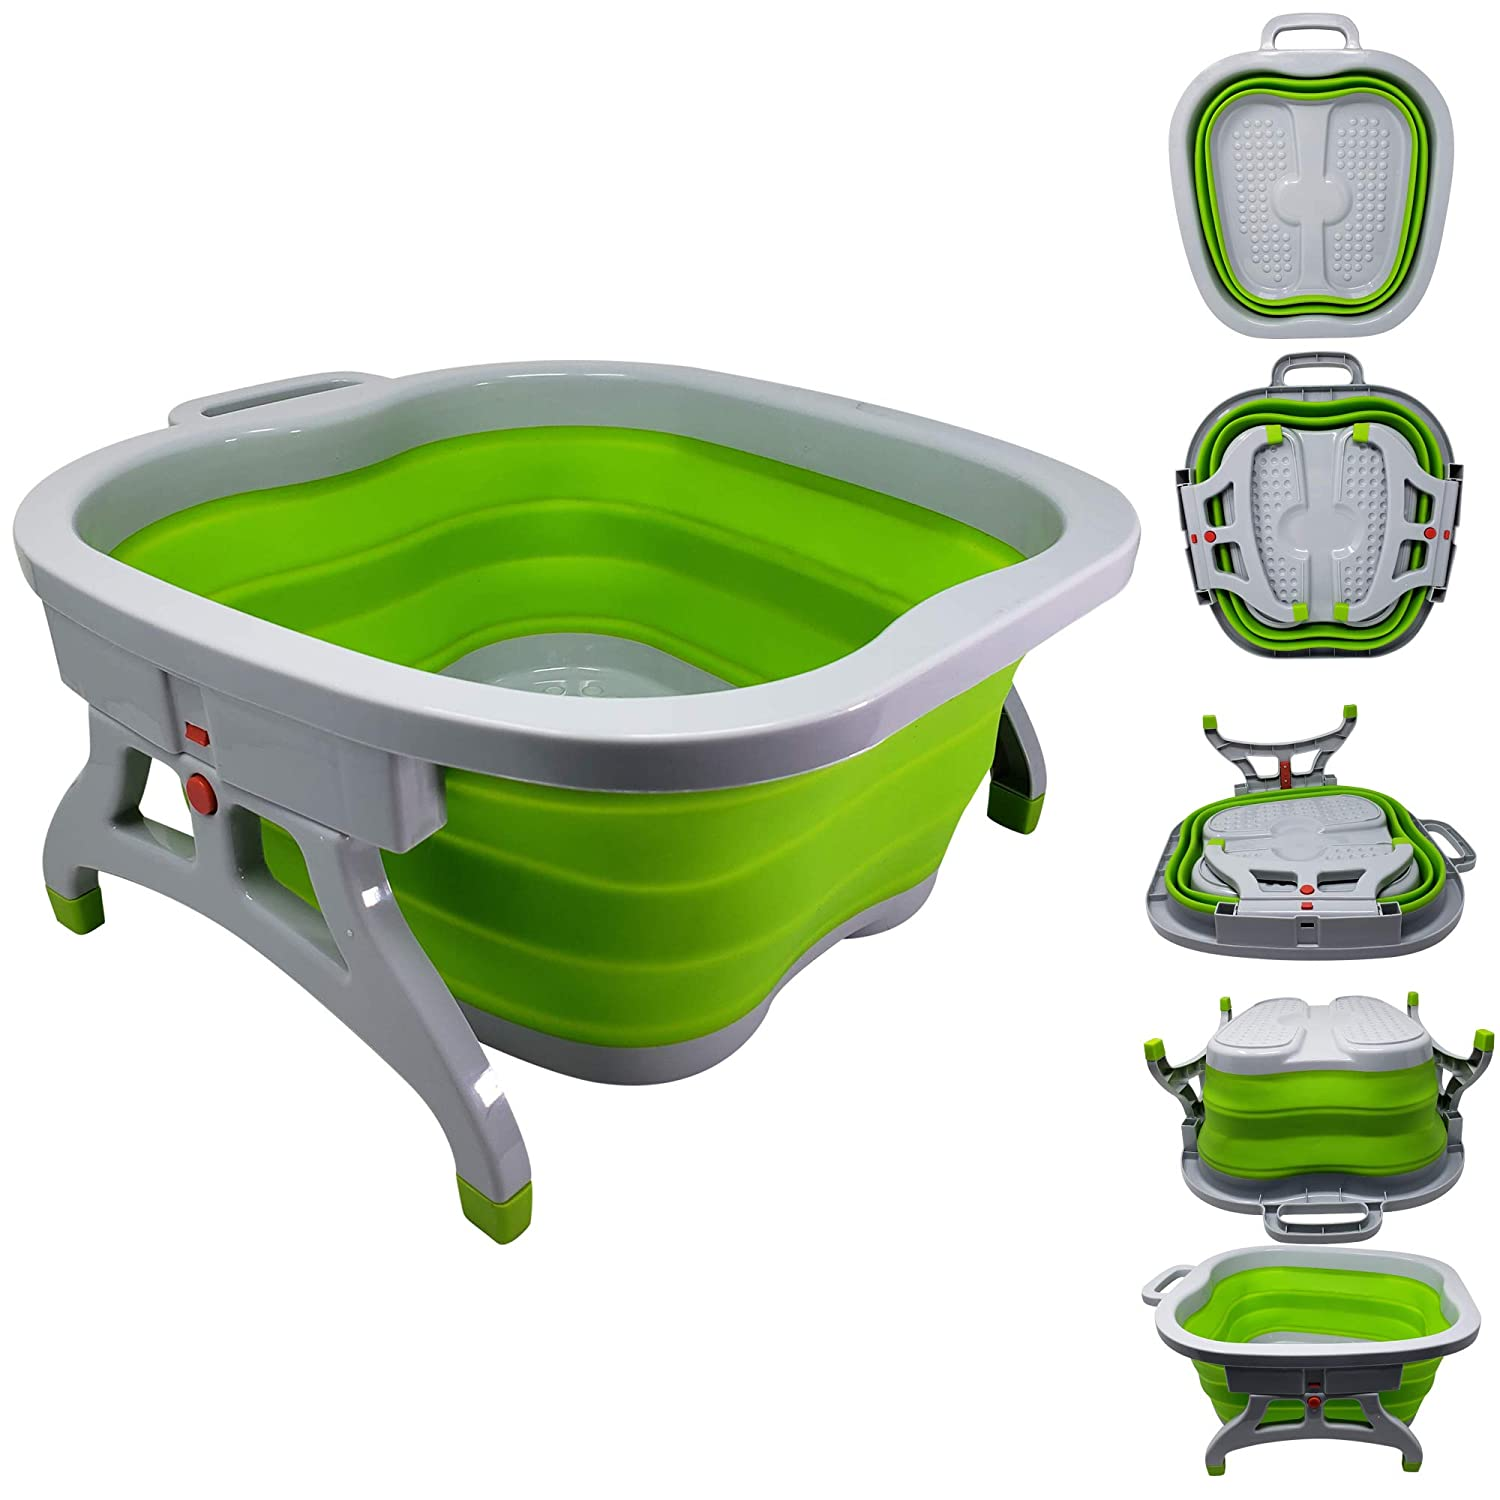 Large Foot Soaking Tub, bucket for feet, foot bath, foot tub, for at Home Spa Pedicures. Plastic/Rubber Foldable Bucket For Soaking Feet to Apply Callus Remover, or Use Pumice Stone (Green)